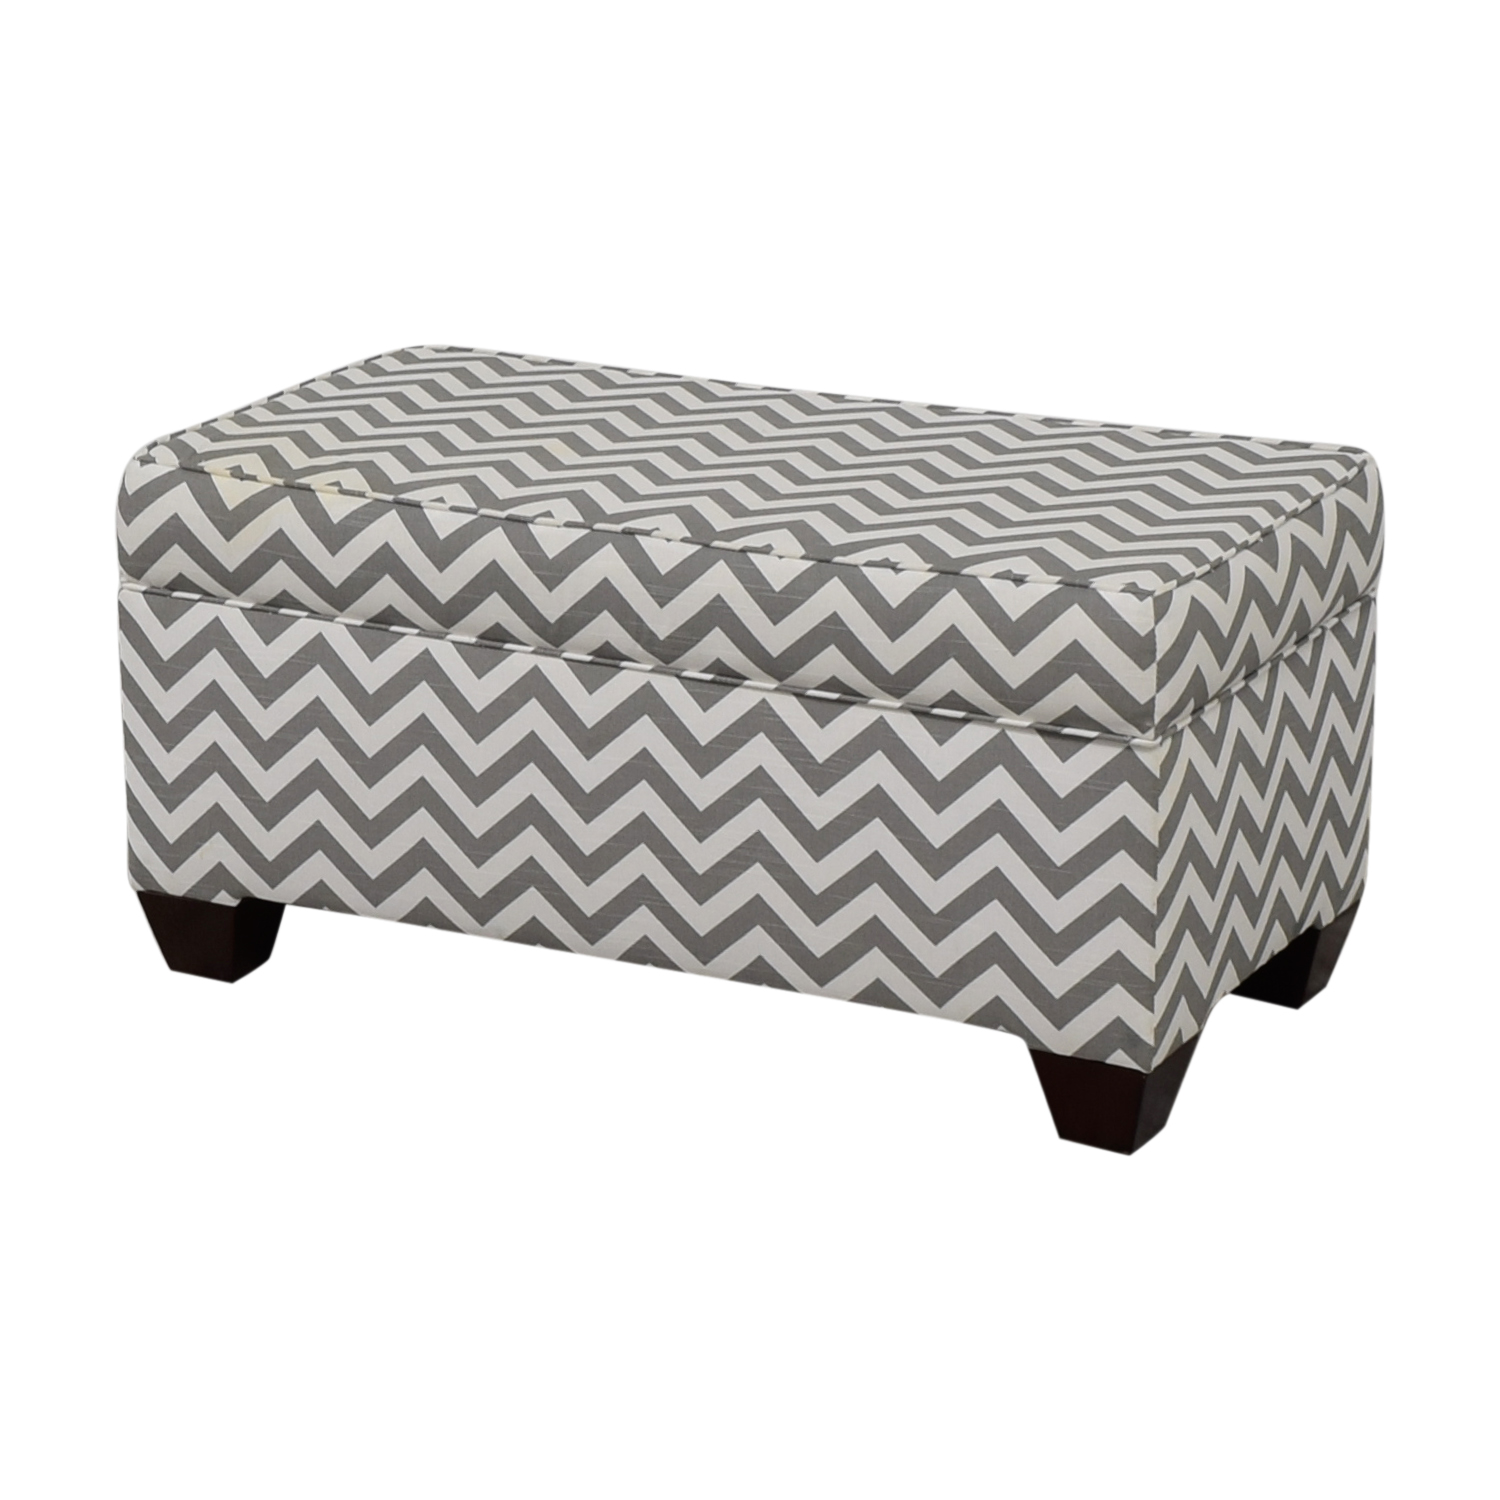 Target Target Grey and White Storage Bench or Ottoman nj